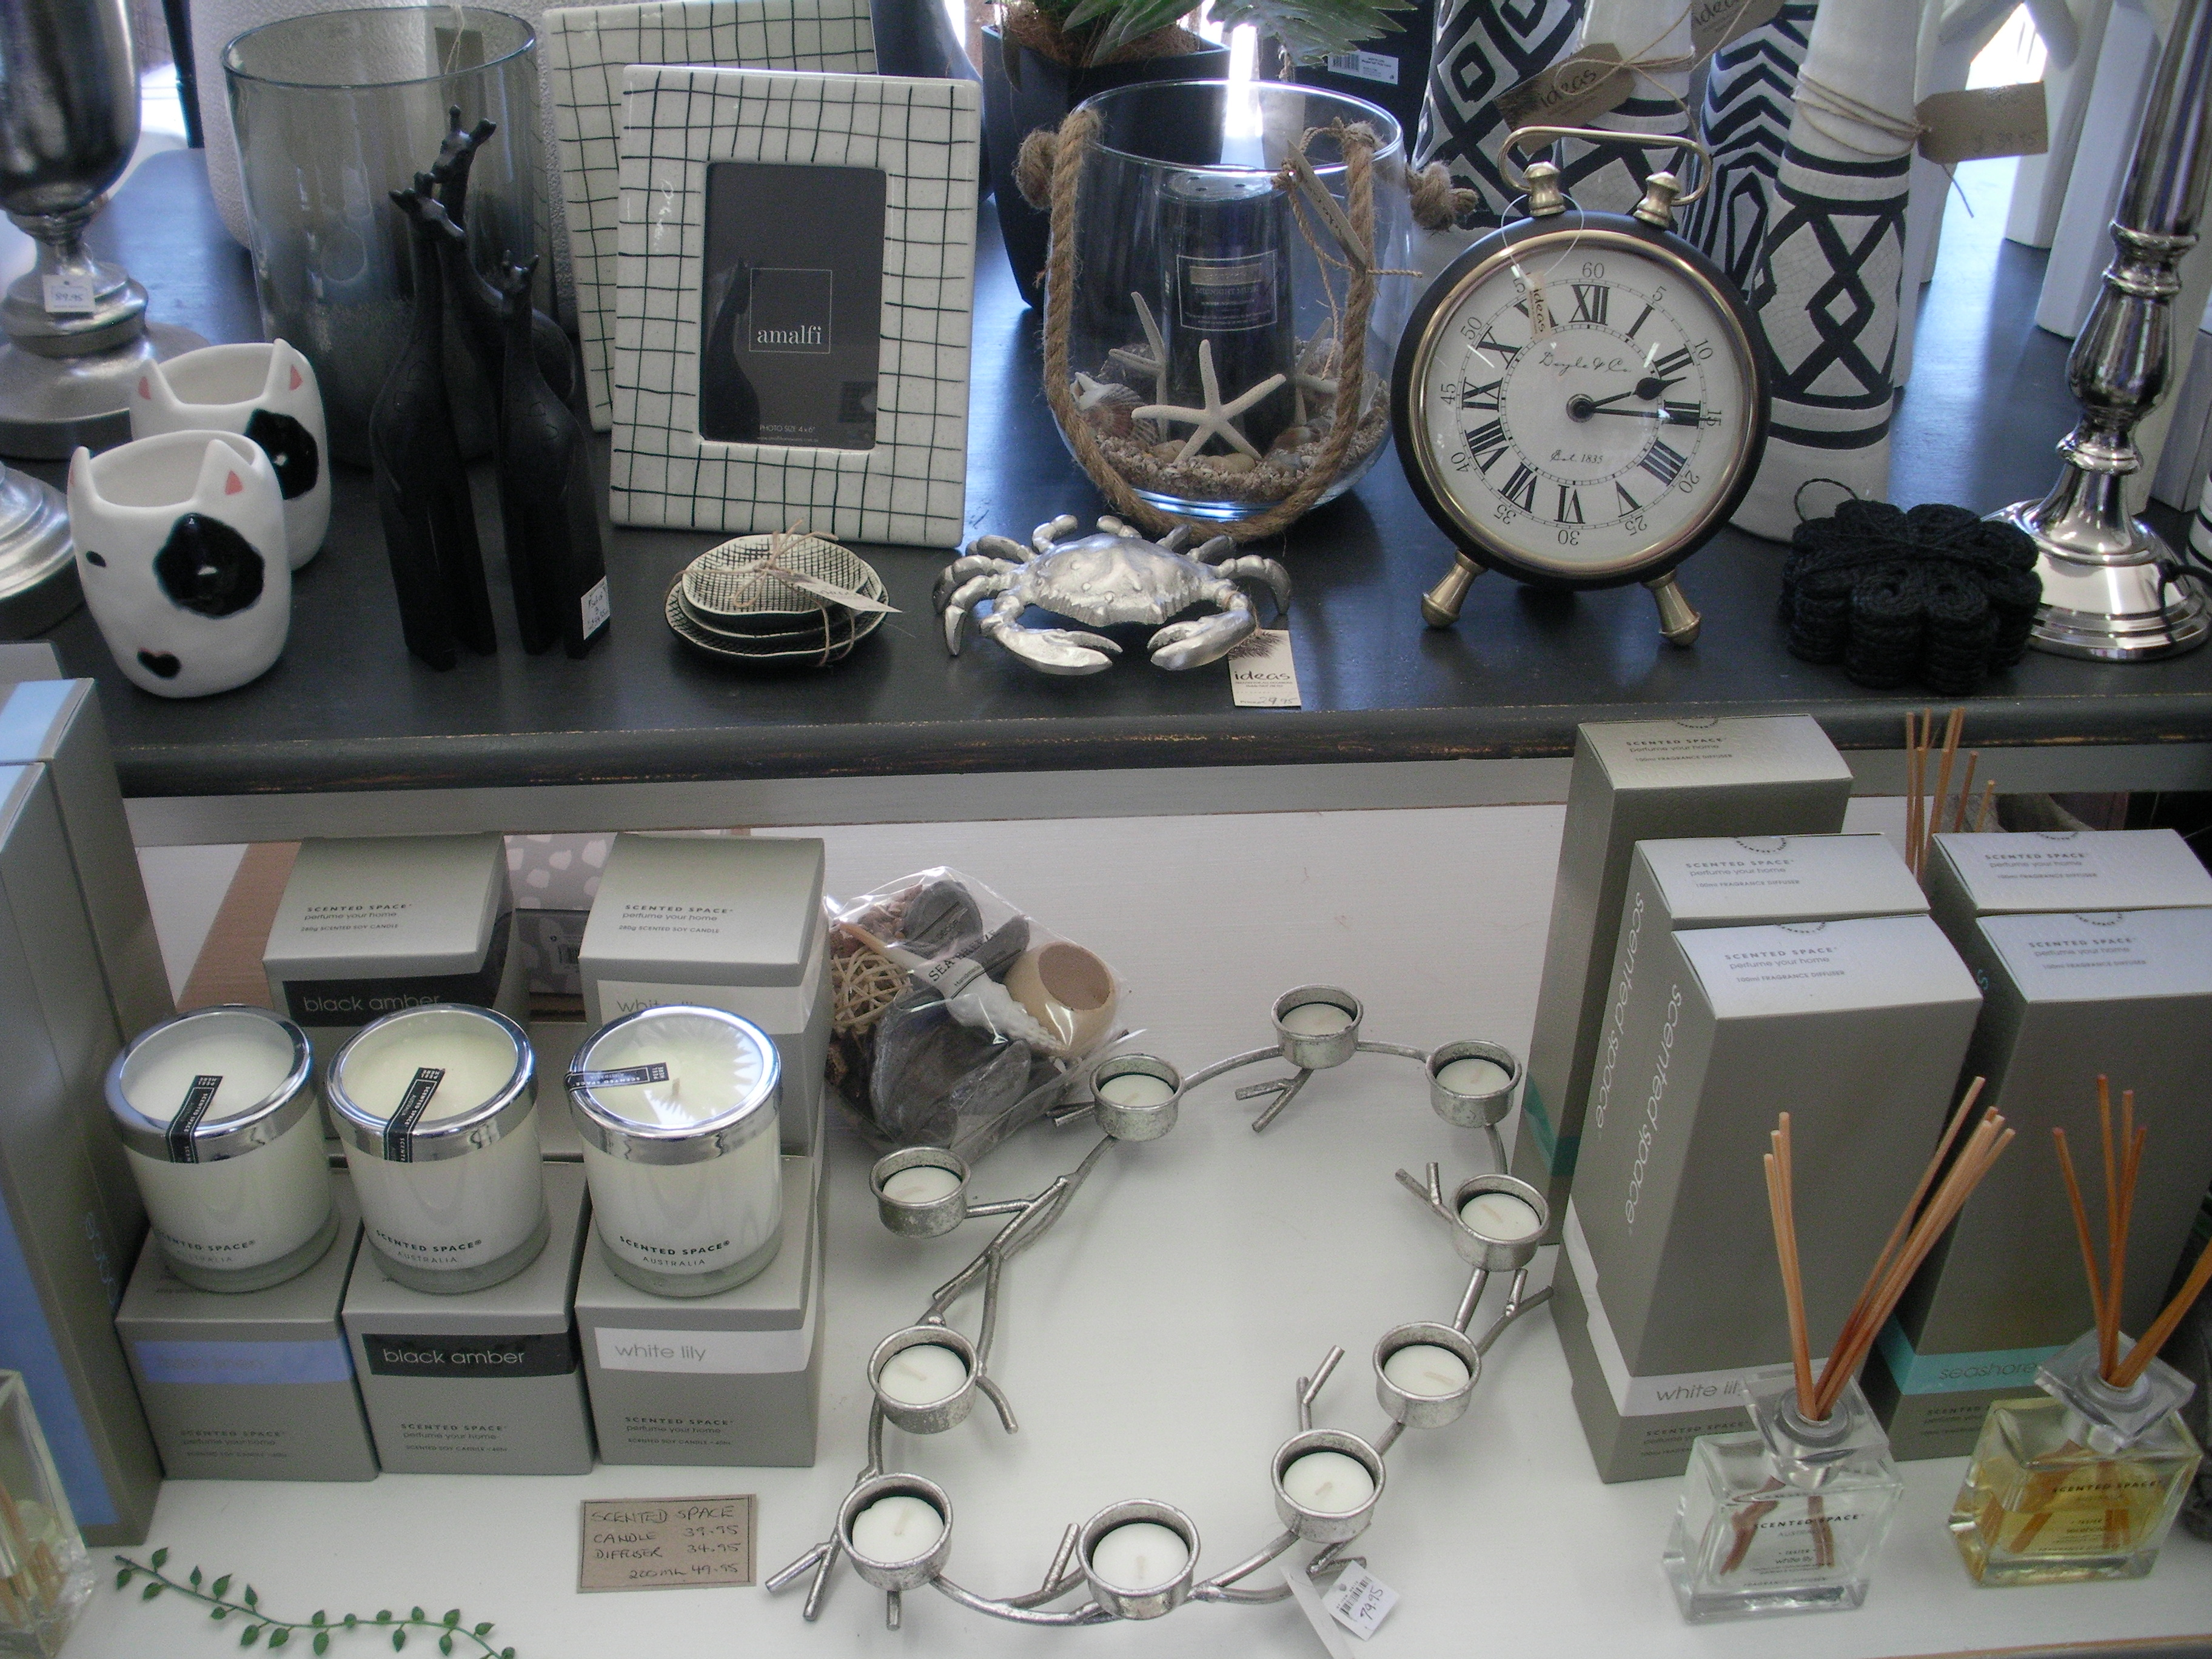 stunning-retail-giftware-business-in-superb-location-0